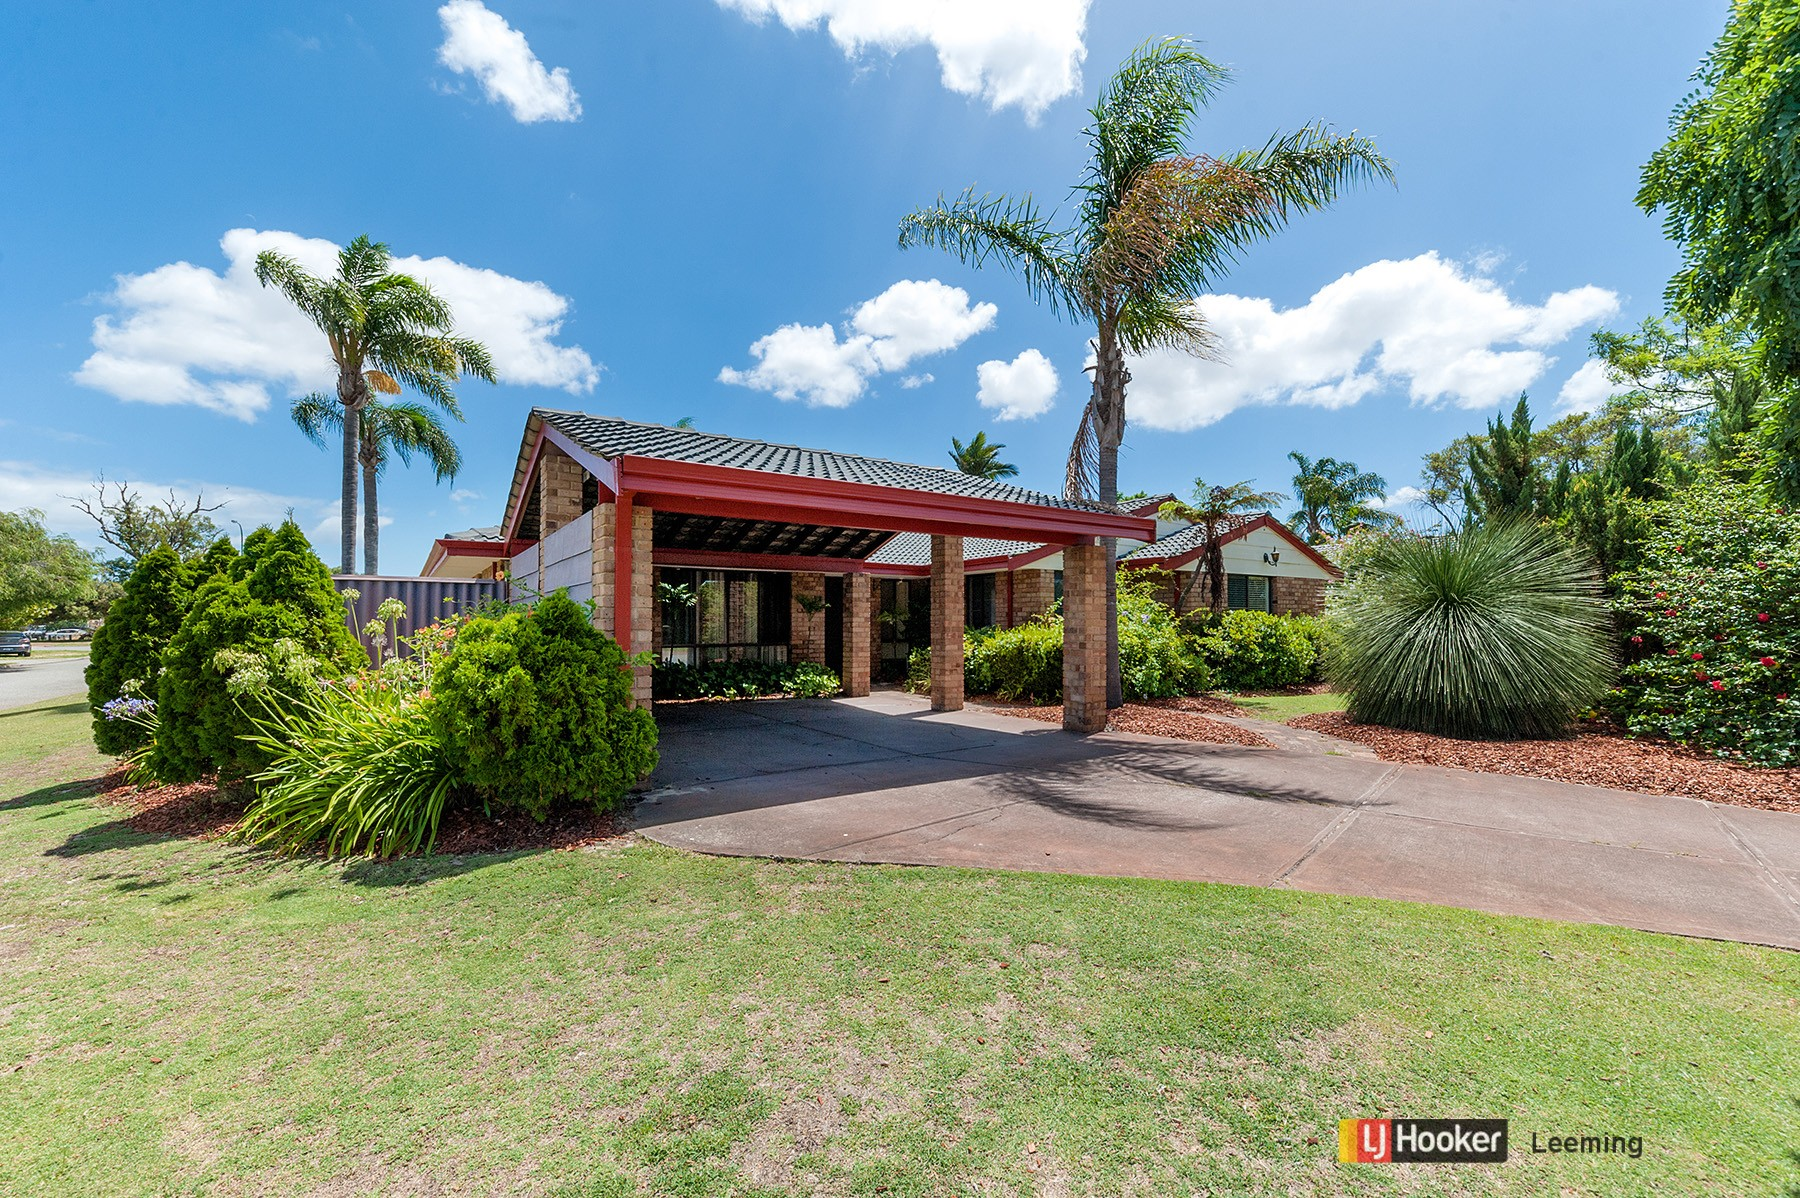 Property Report for 4 Ashby Court, Leeming WA 6149